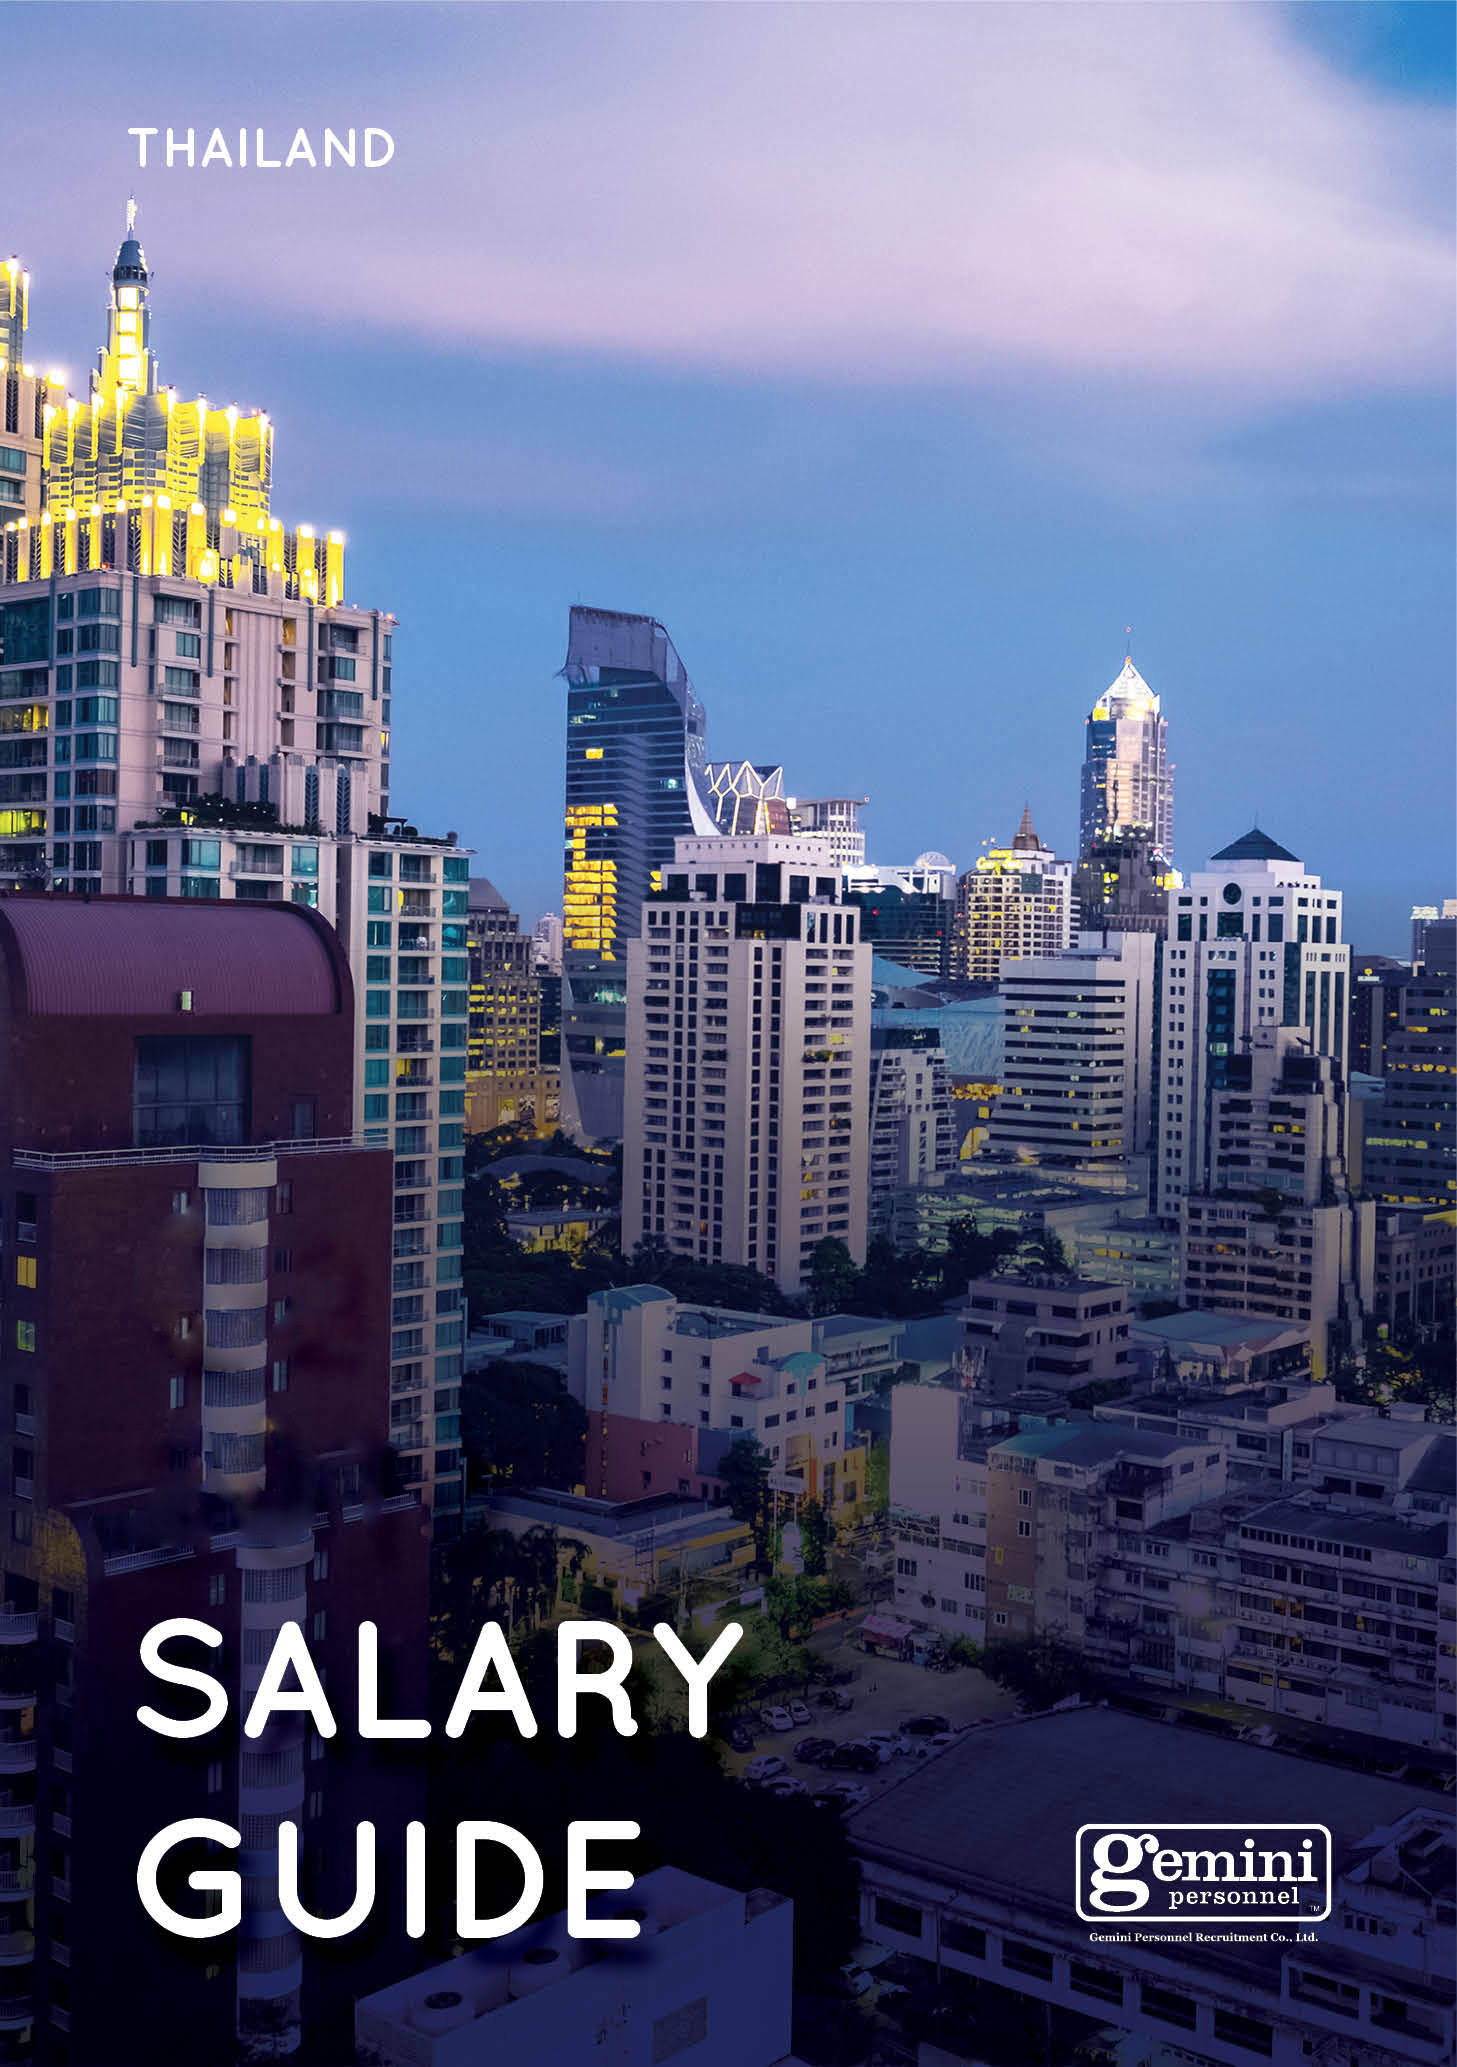 Salary Guide - Thailand